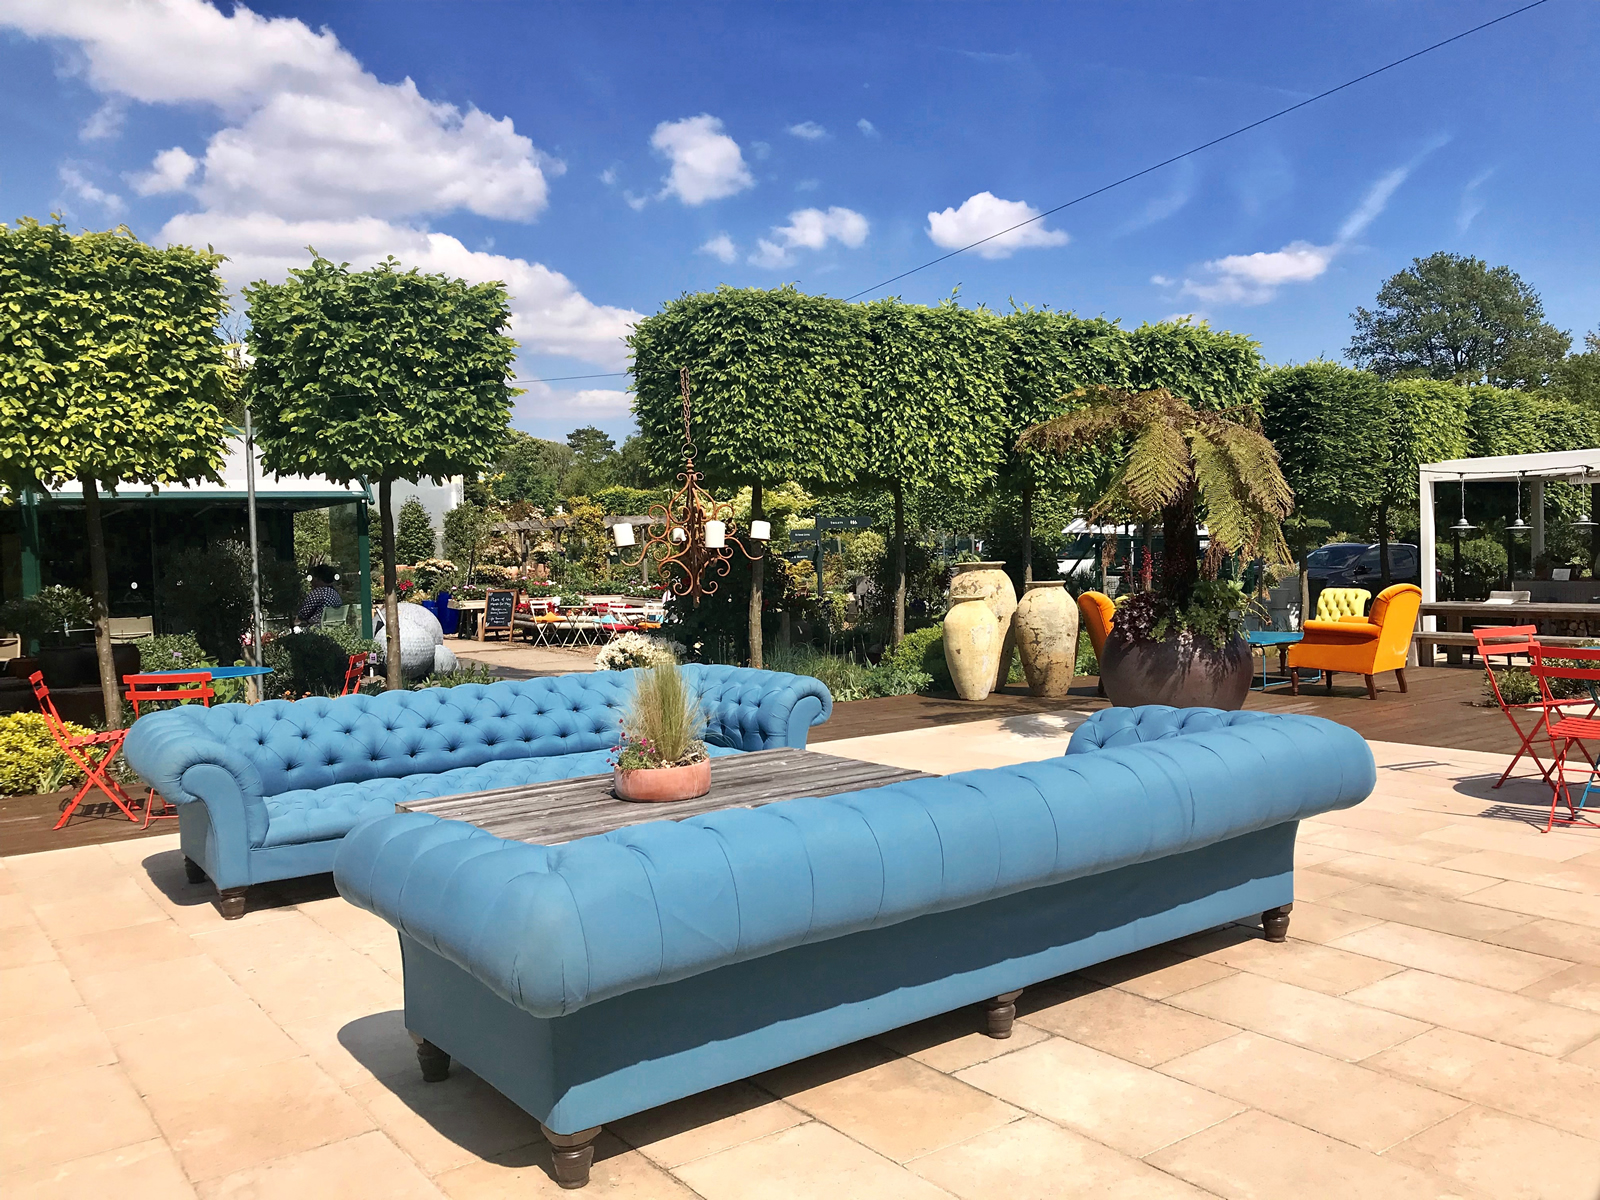 Weybridge show garden, created by our designers and landscapers, with luxury garden furniture